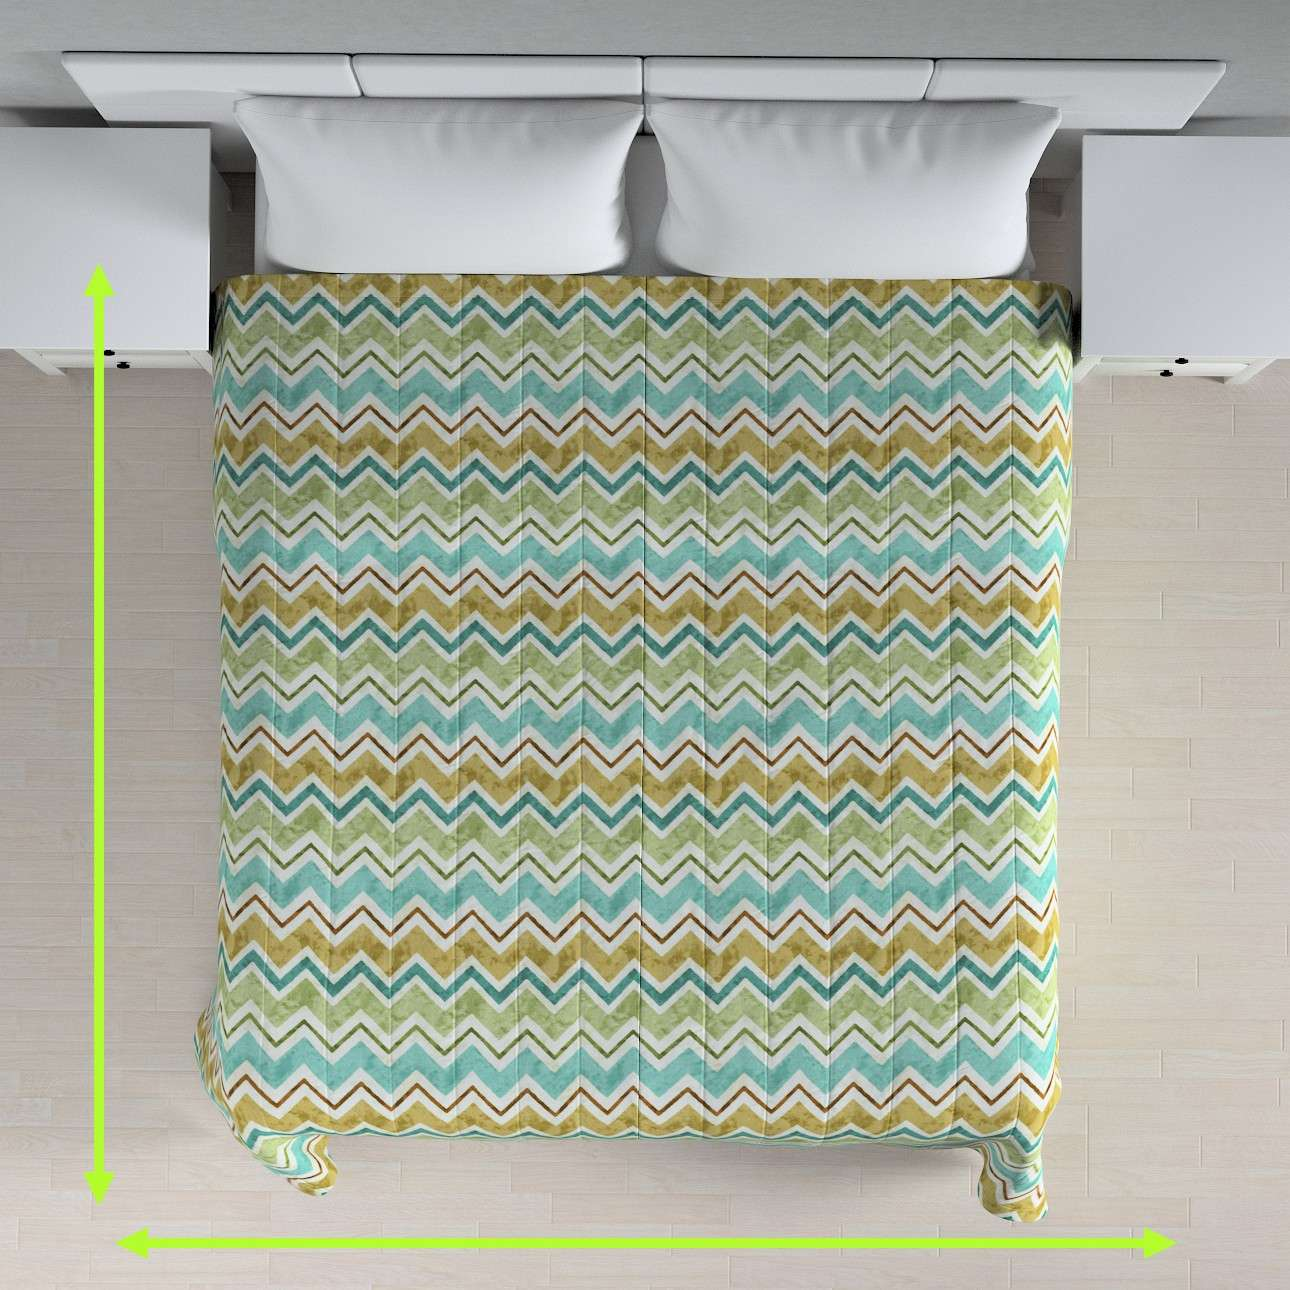 Stripe quilted throw in collection Acapulco, fabric: 141-41